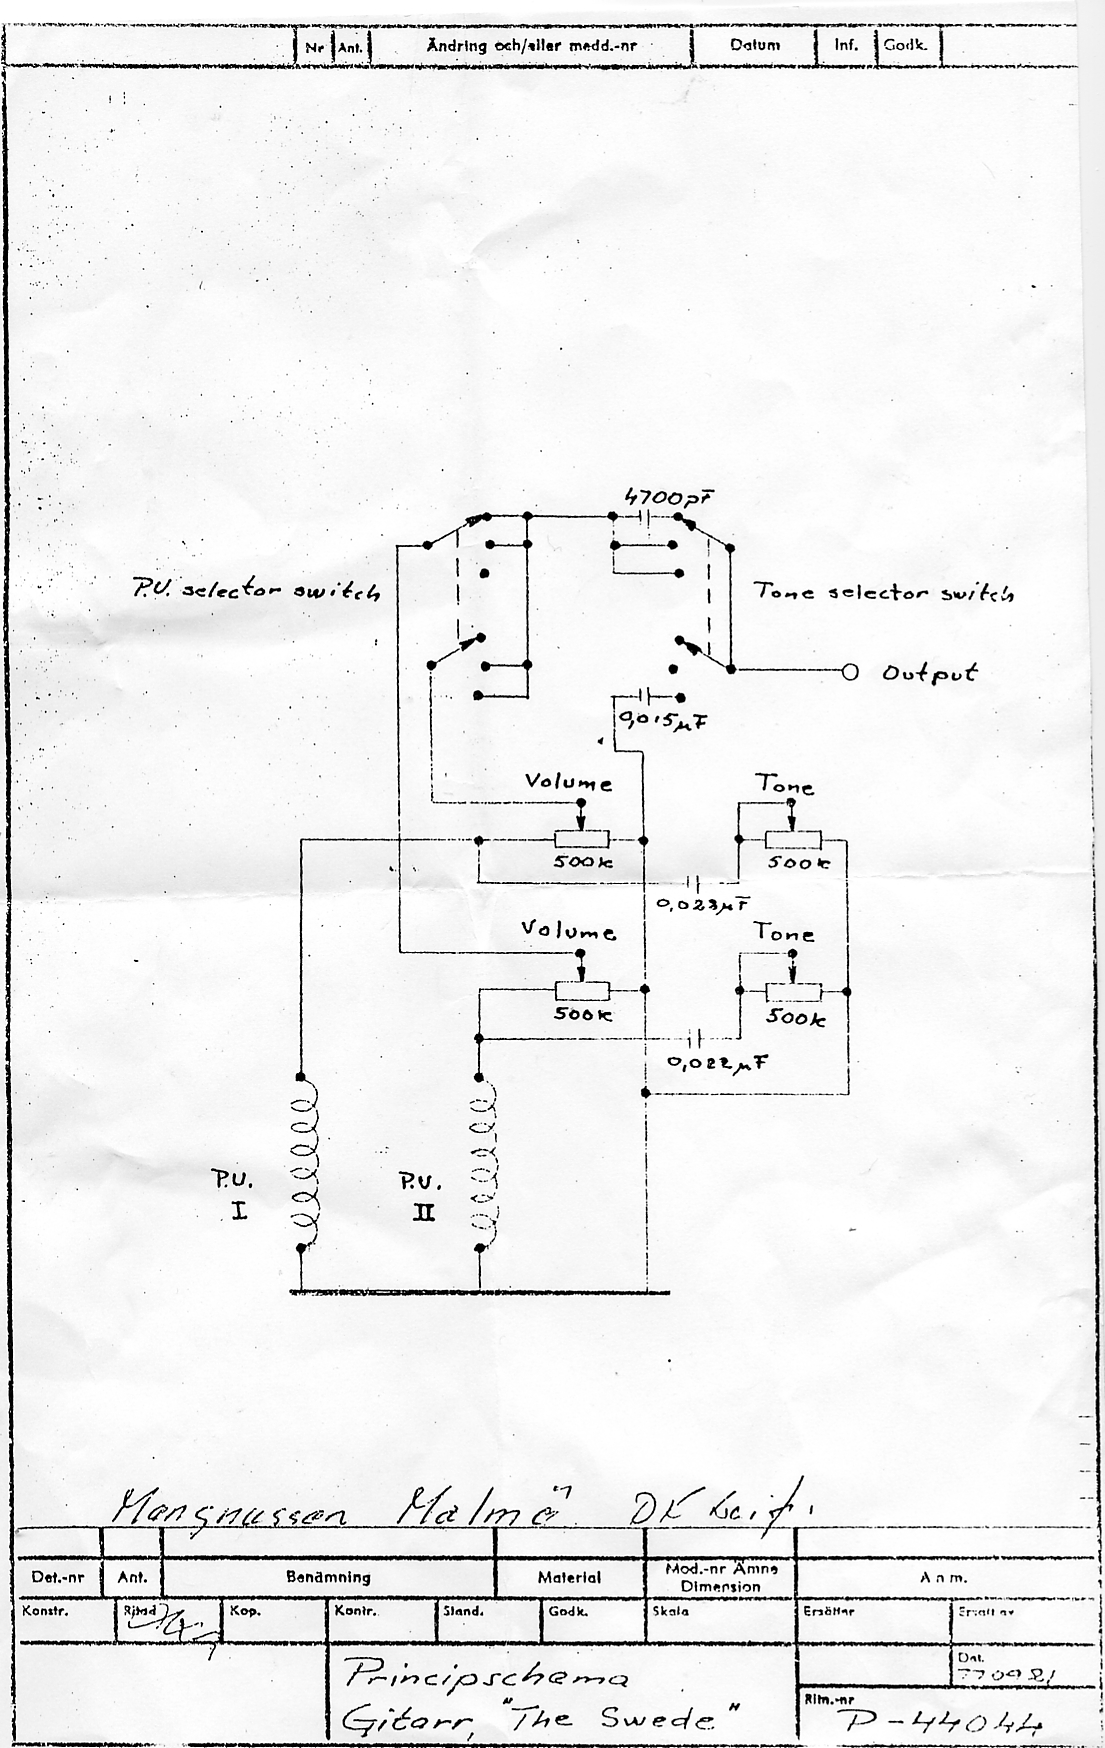 hagstrom swede wiring diagram mile marker atv winch guitar schematics get free image about